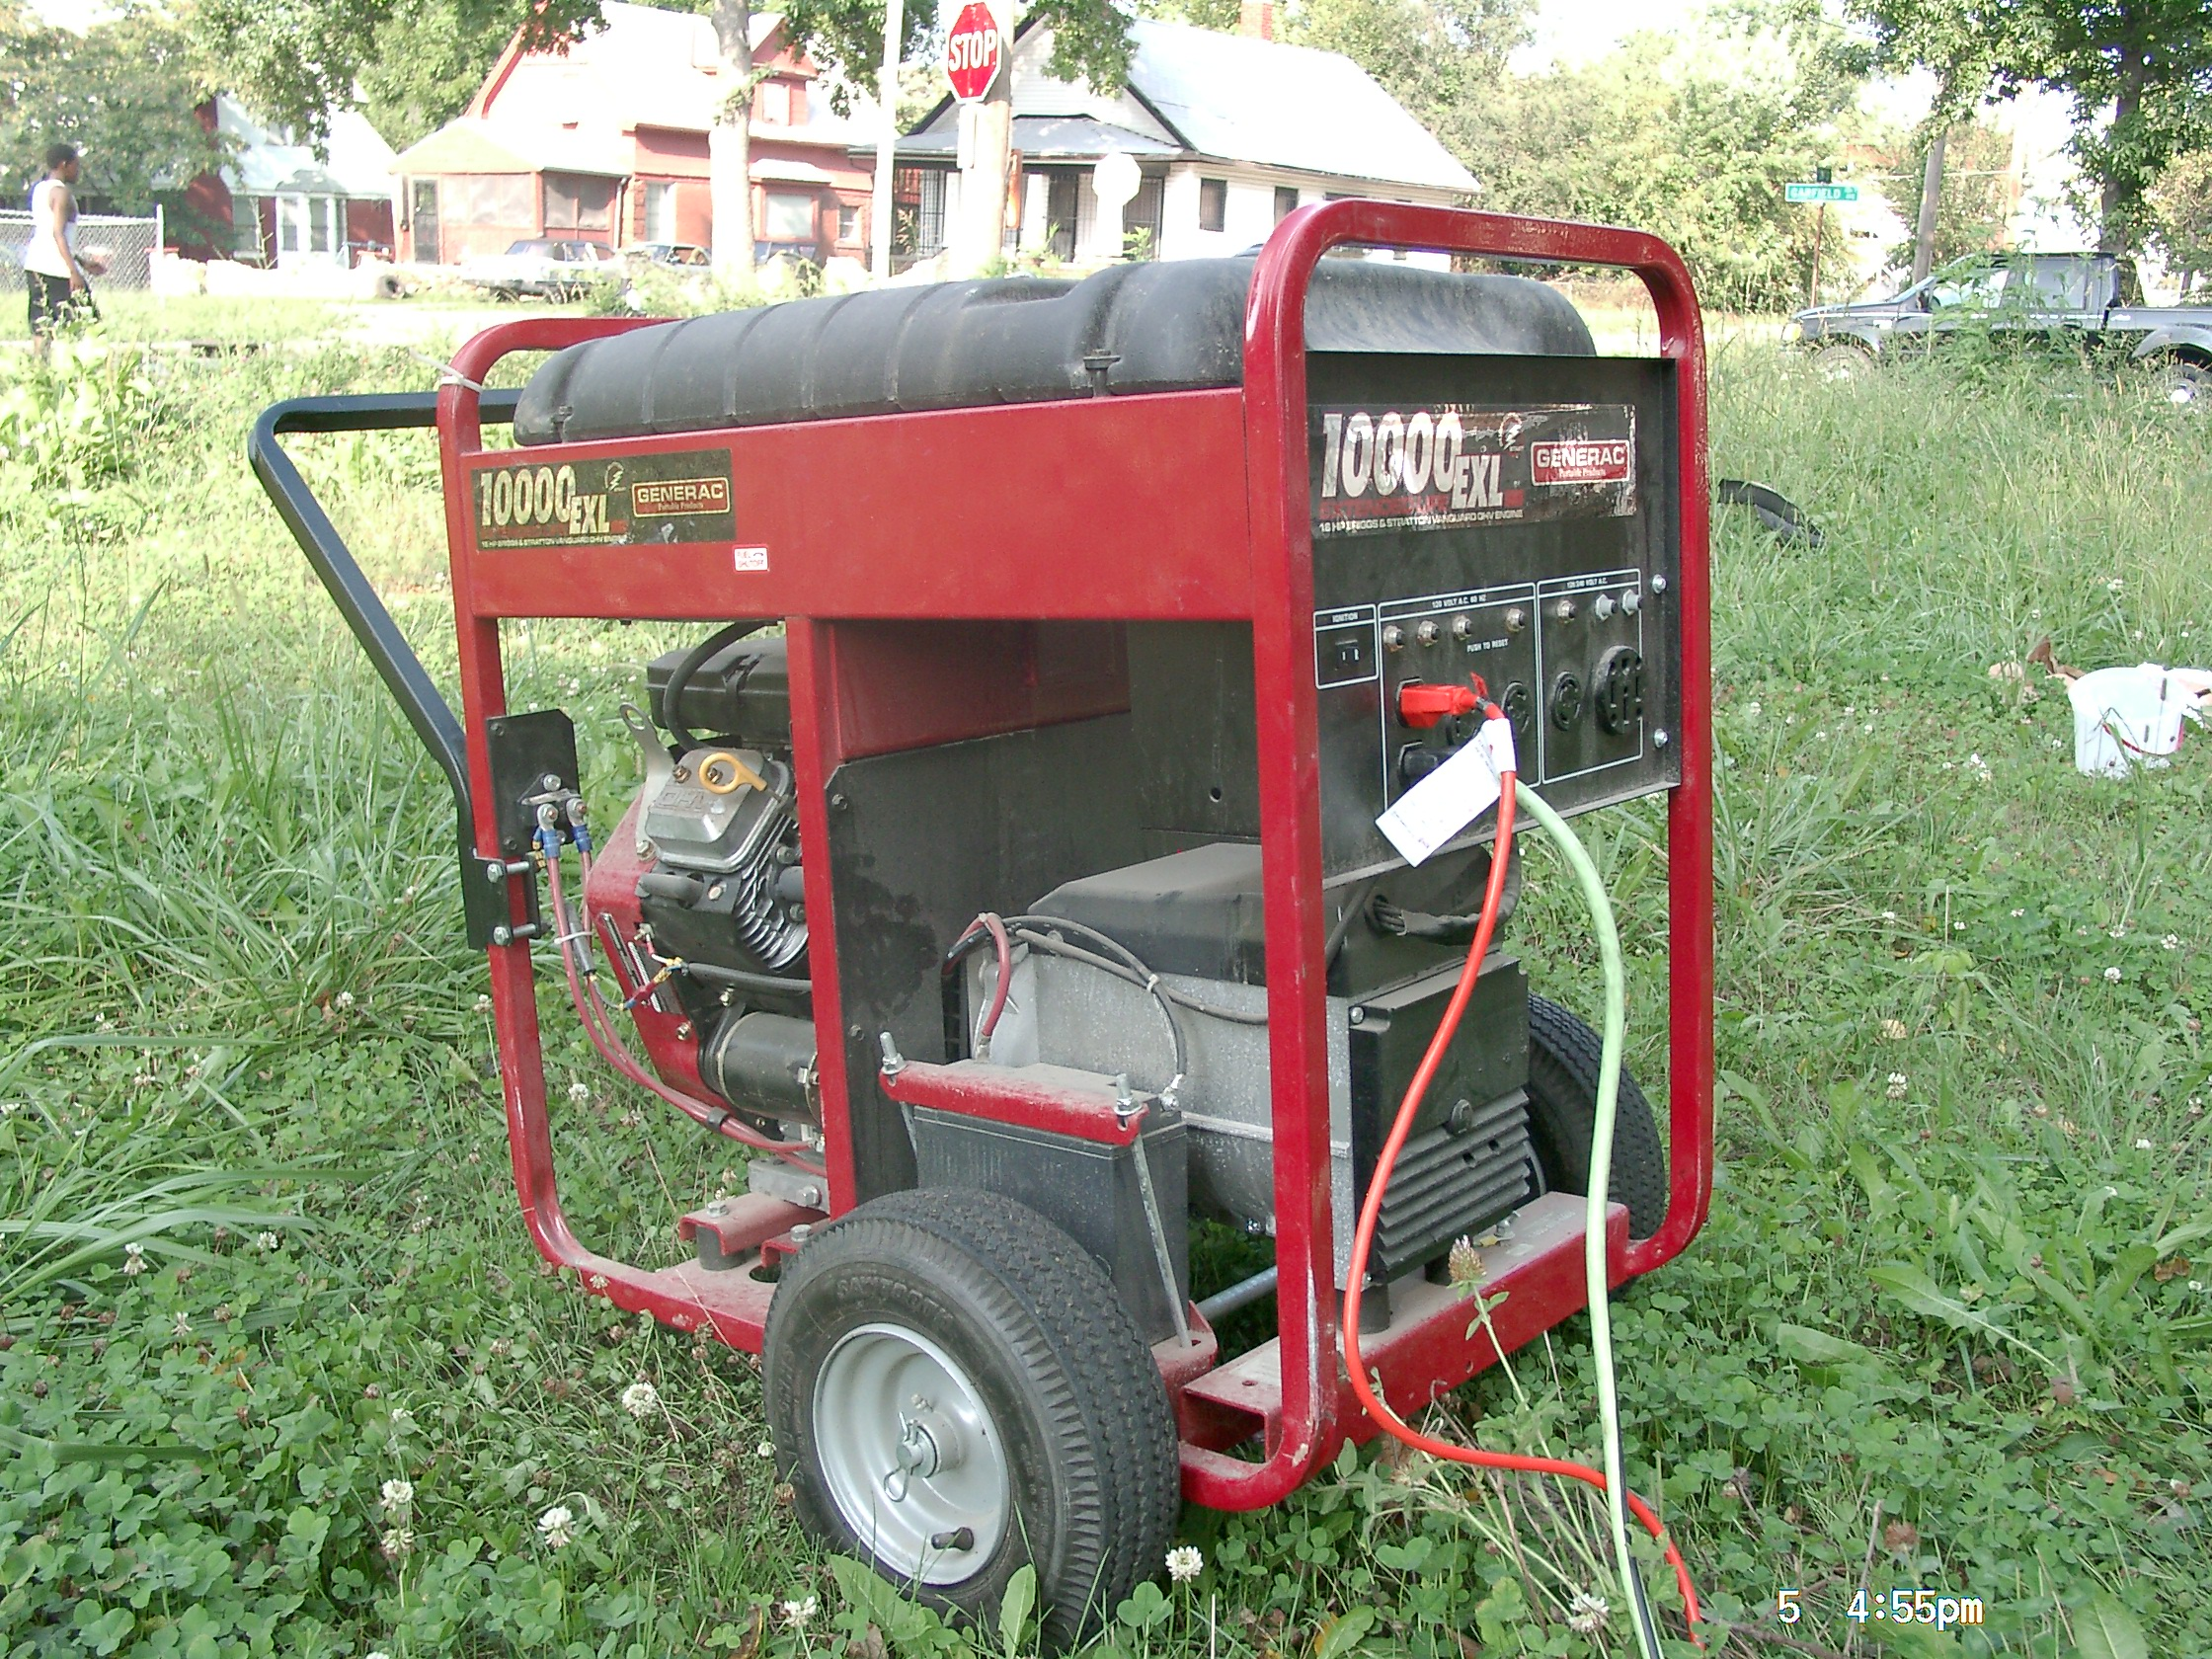 portable generator on grass with home in background